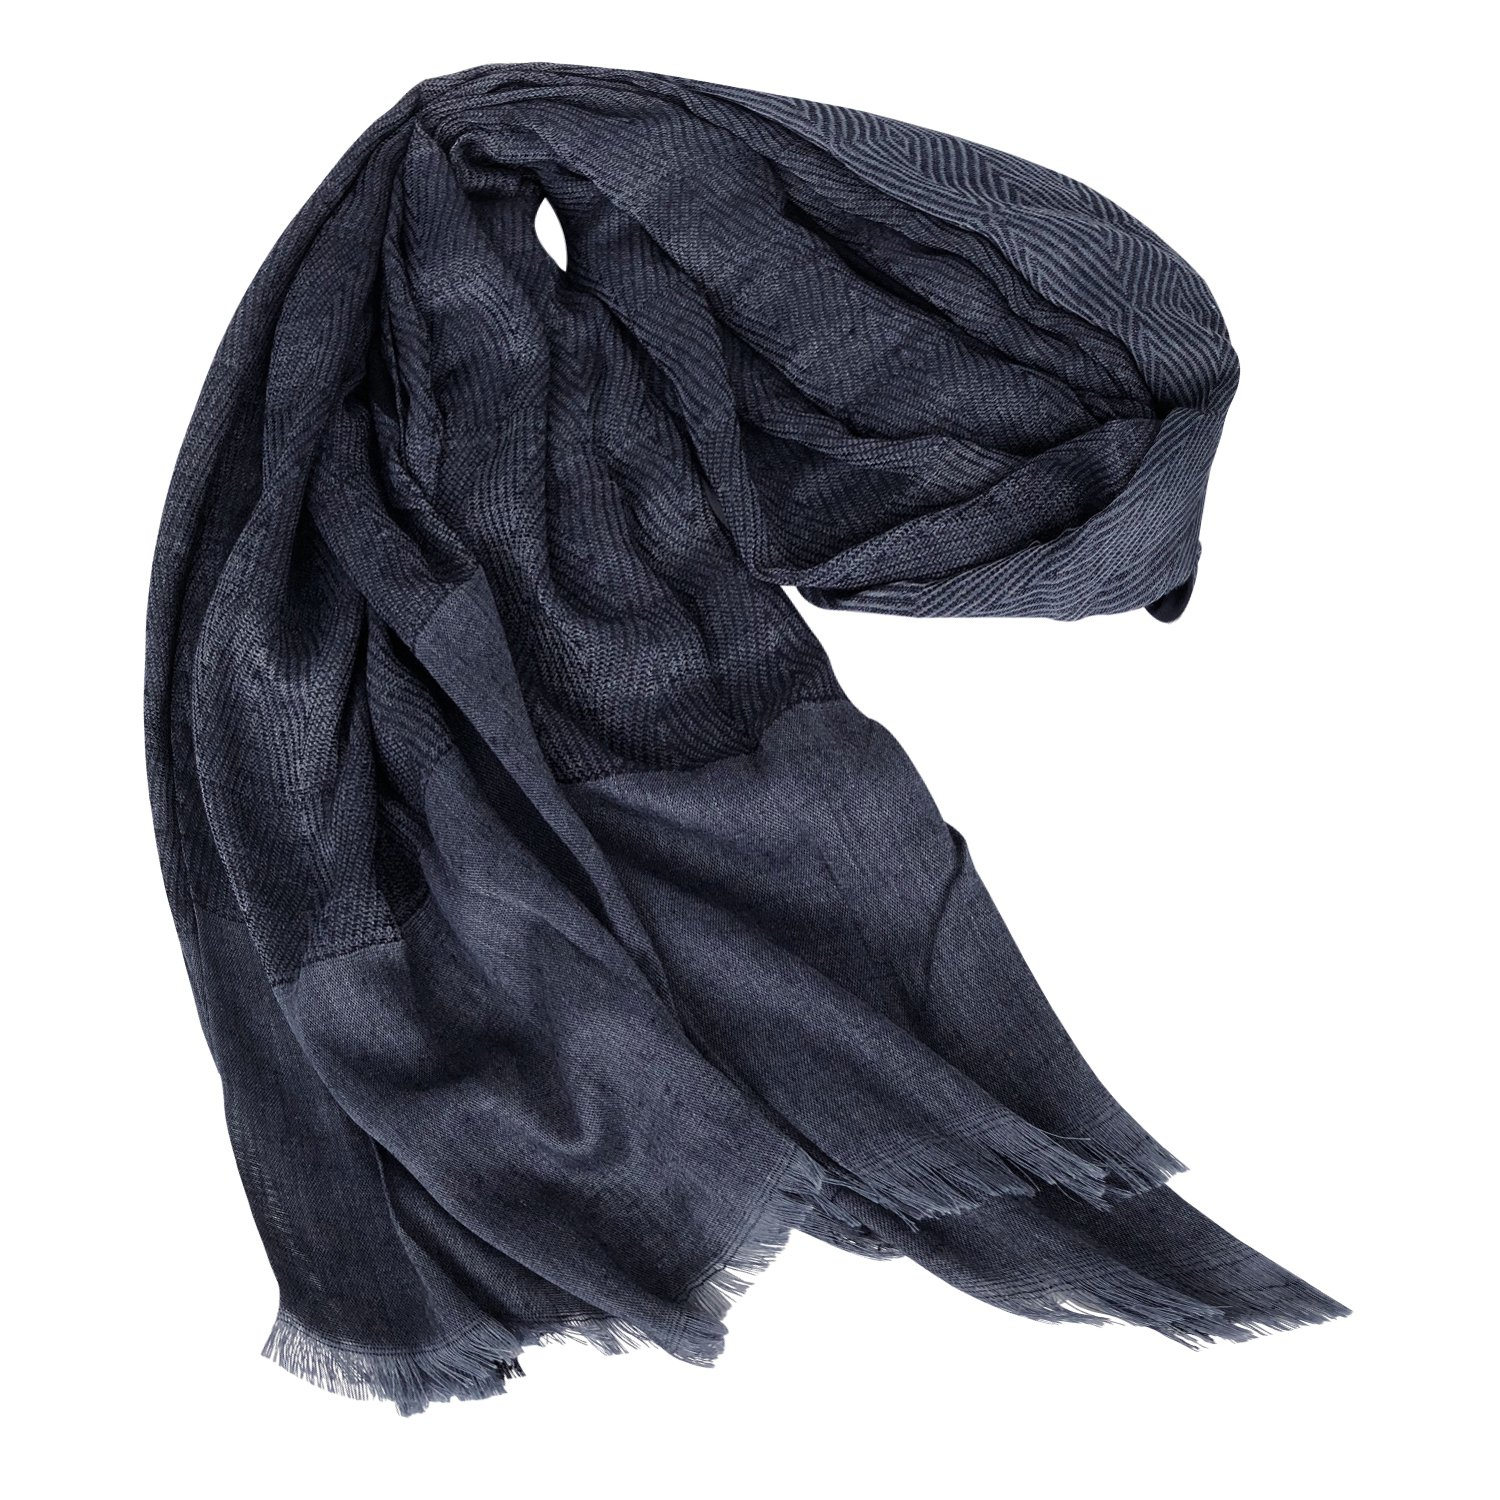 GERINLY Men Scarves Twill Cotton-Linen Long Winter Scarf (NavyBlue) by GERINLY (Image #6)